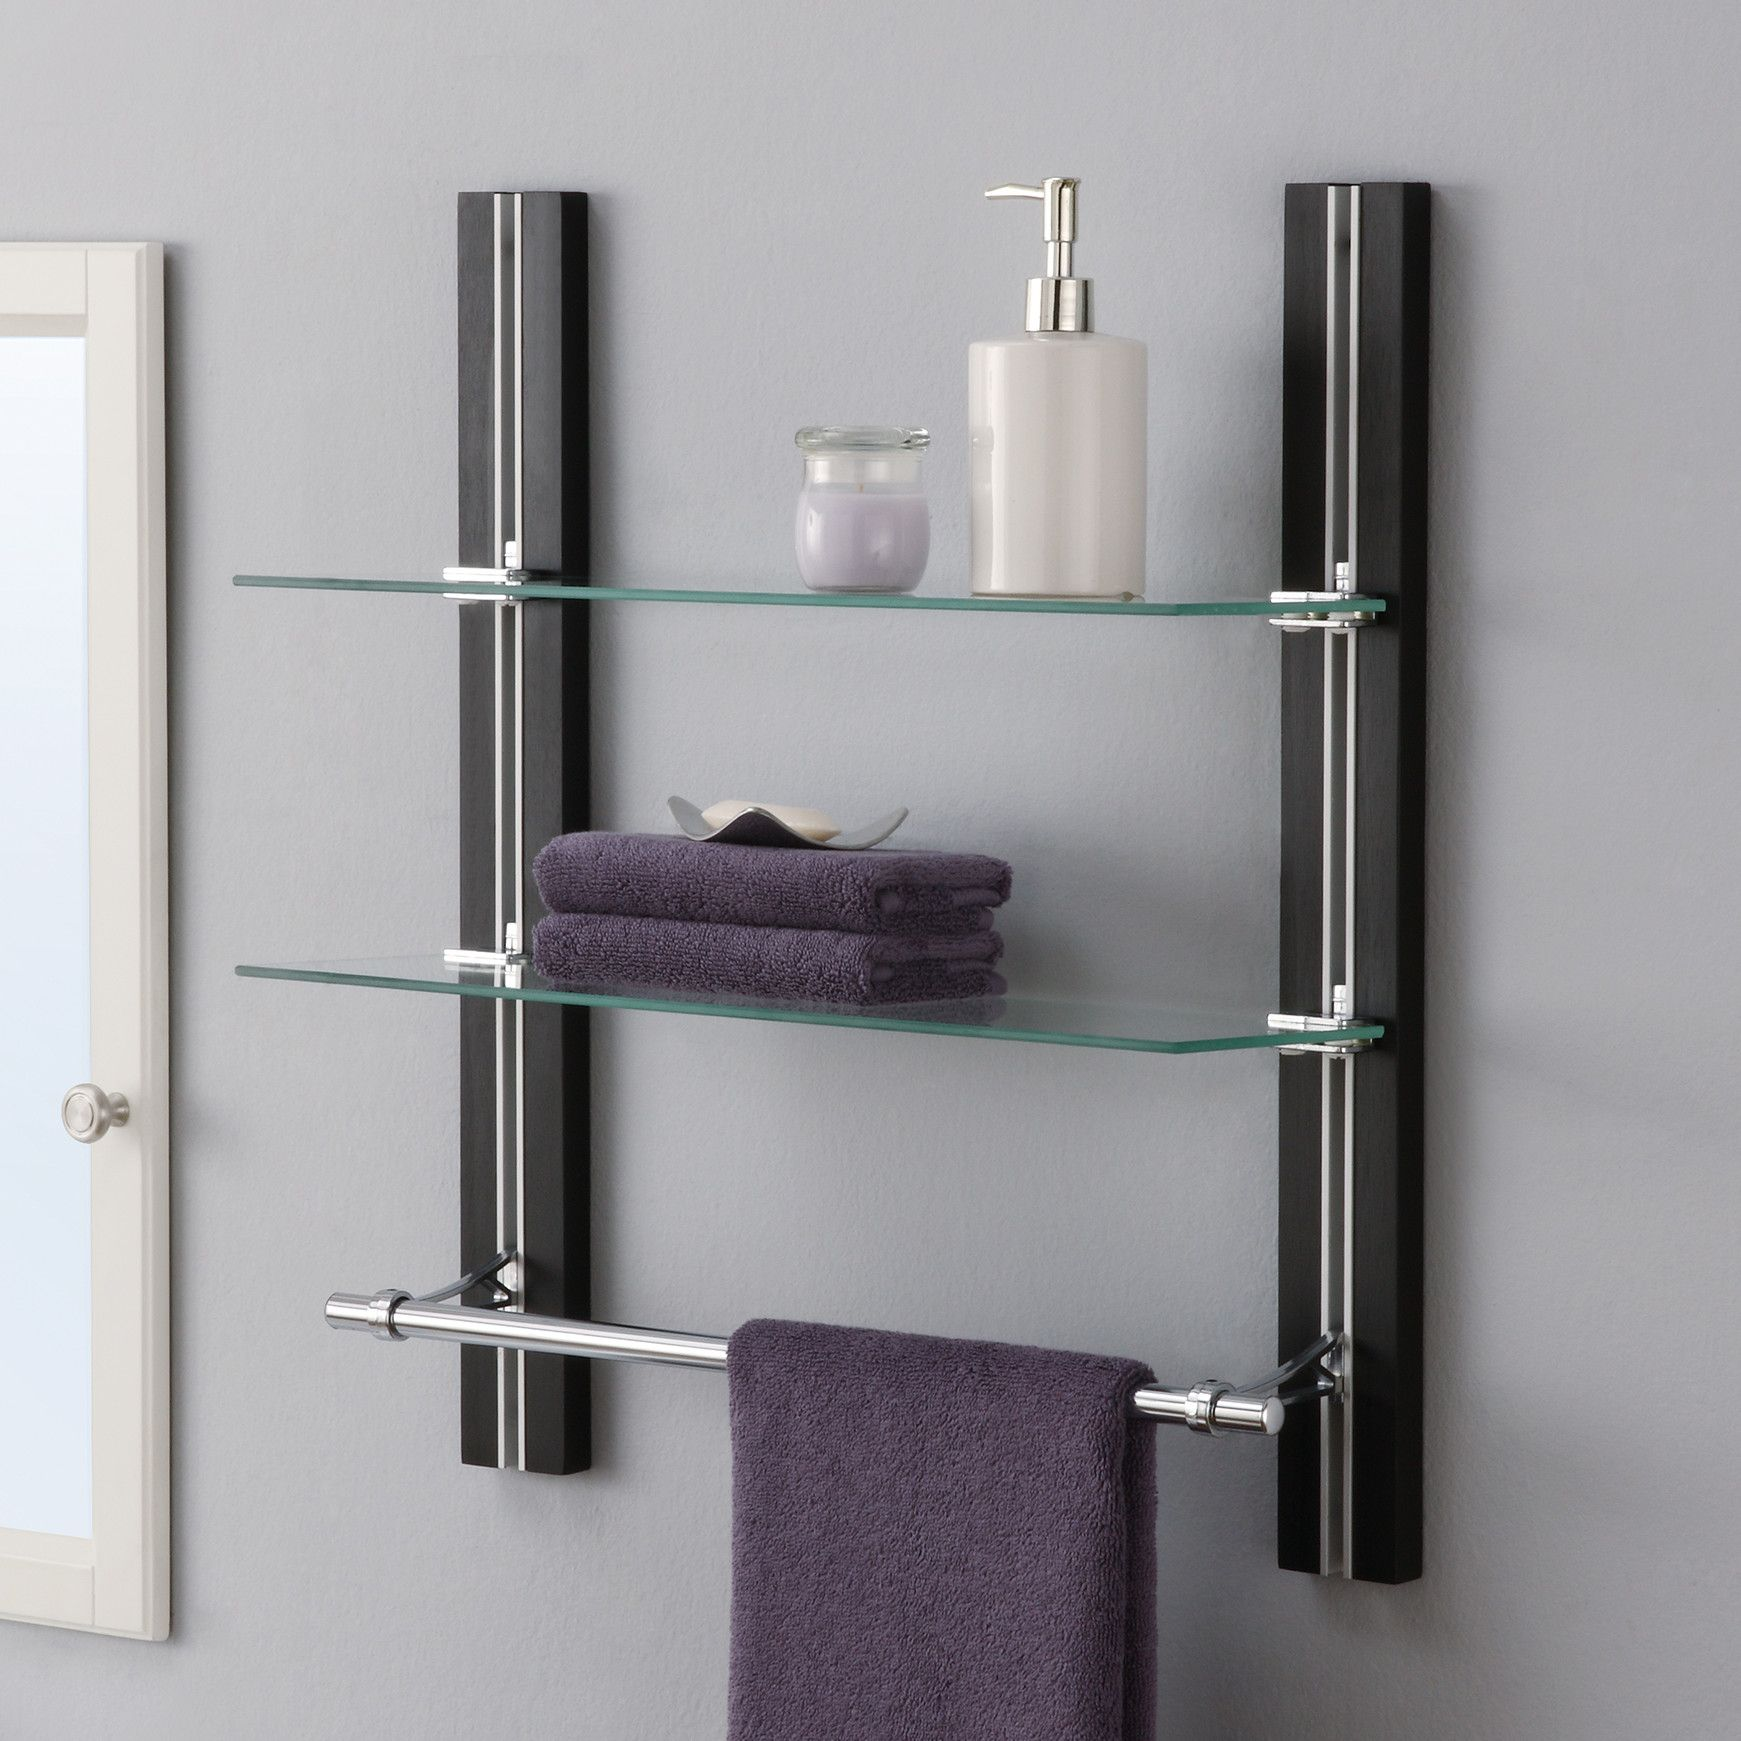 OIA W X H Two Tier Bathroom Shelf With Towel Bar - Bathroom wall shelf with towel bar for bathroom decor ideas